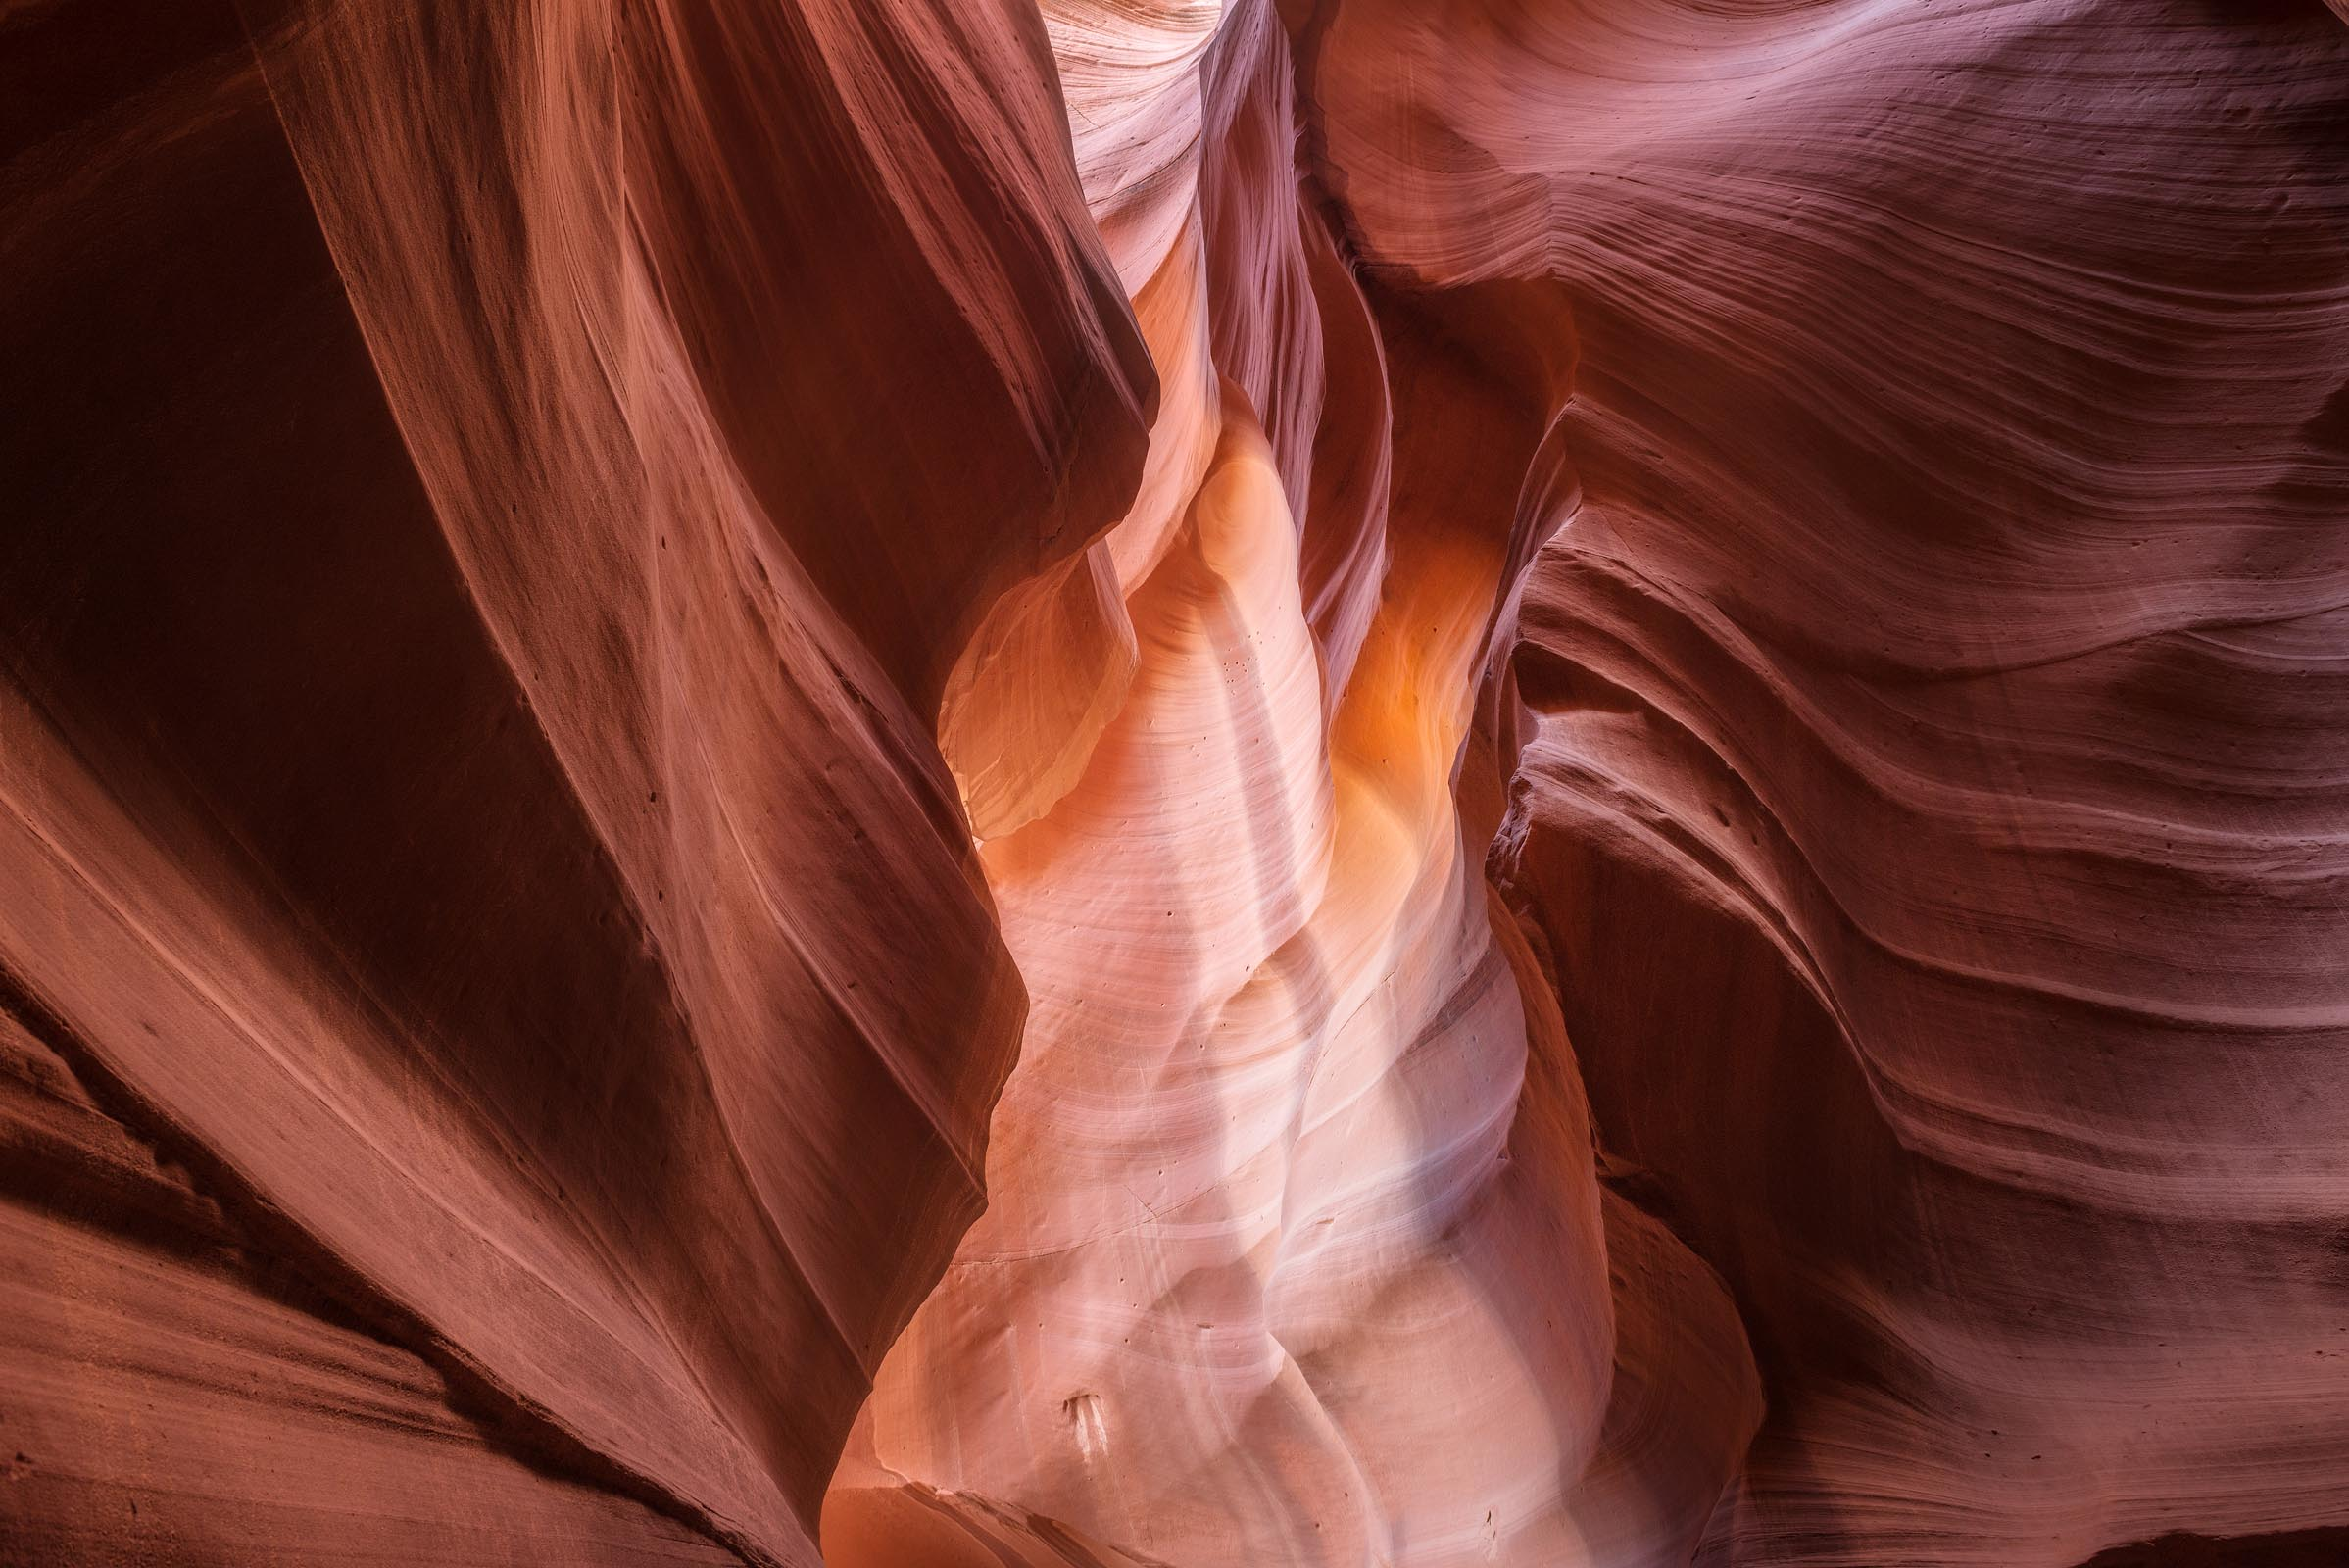 Photograph of Antelope Canyon in Page, Arizona by Brent Goldman Photography